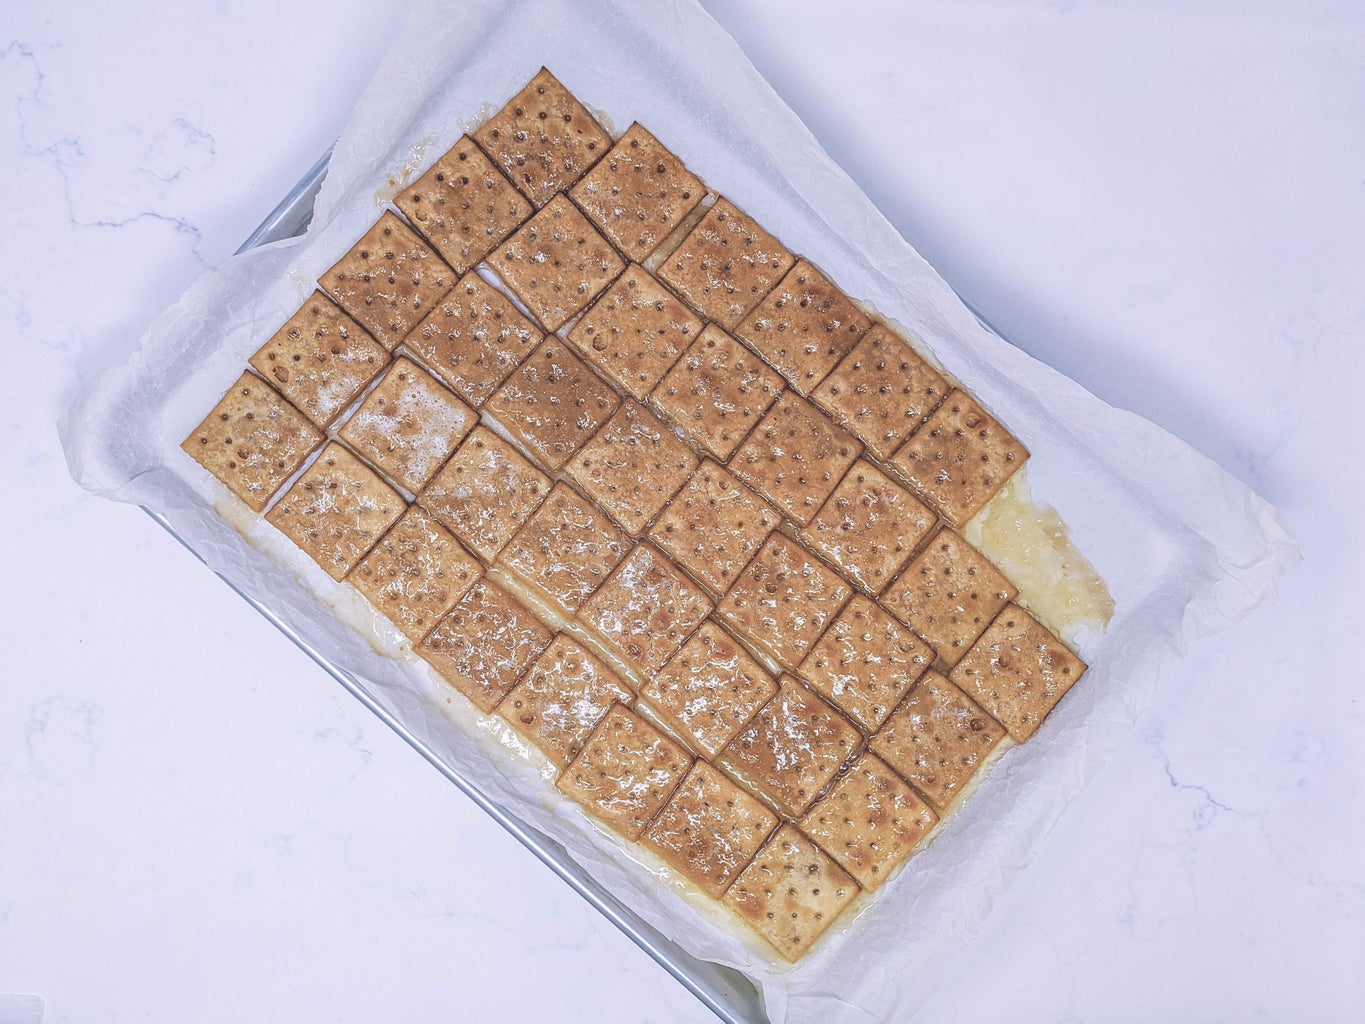 Make the Toffee Crumble